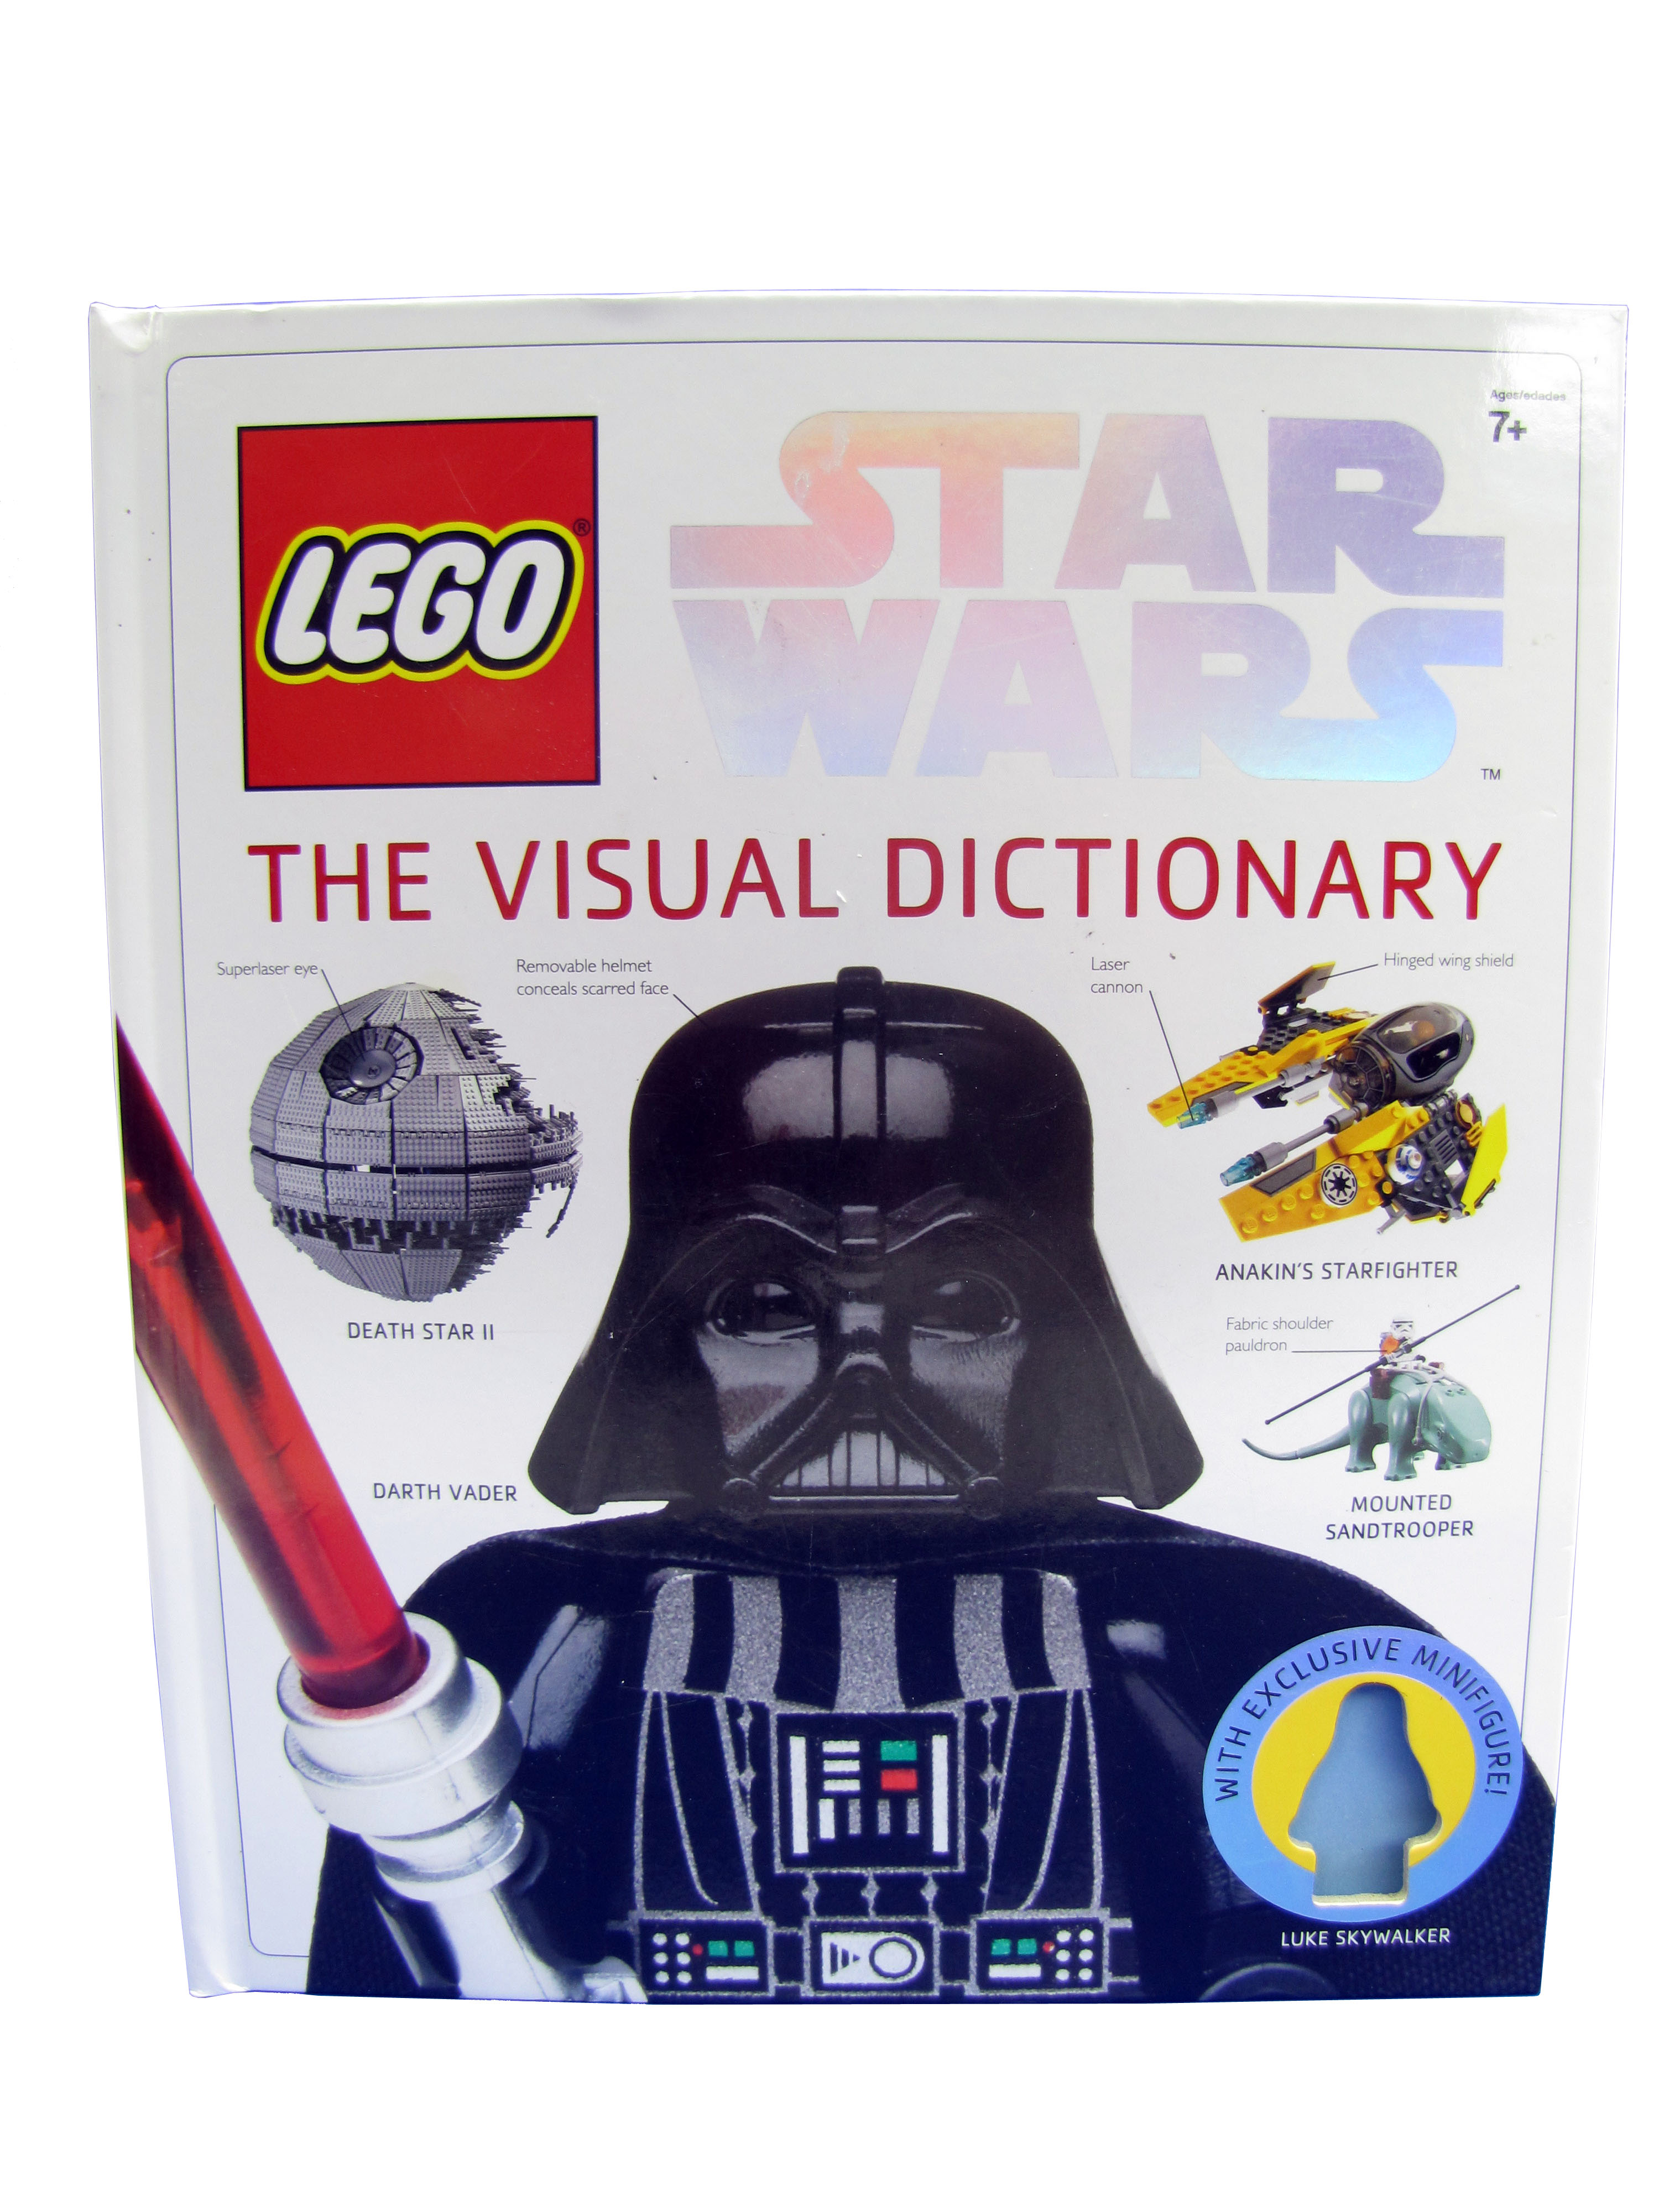 LEGO Star Wars : The Visual Dictionary Simon Beecroft Hard Cover